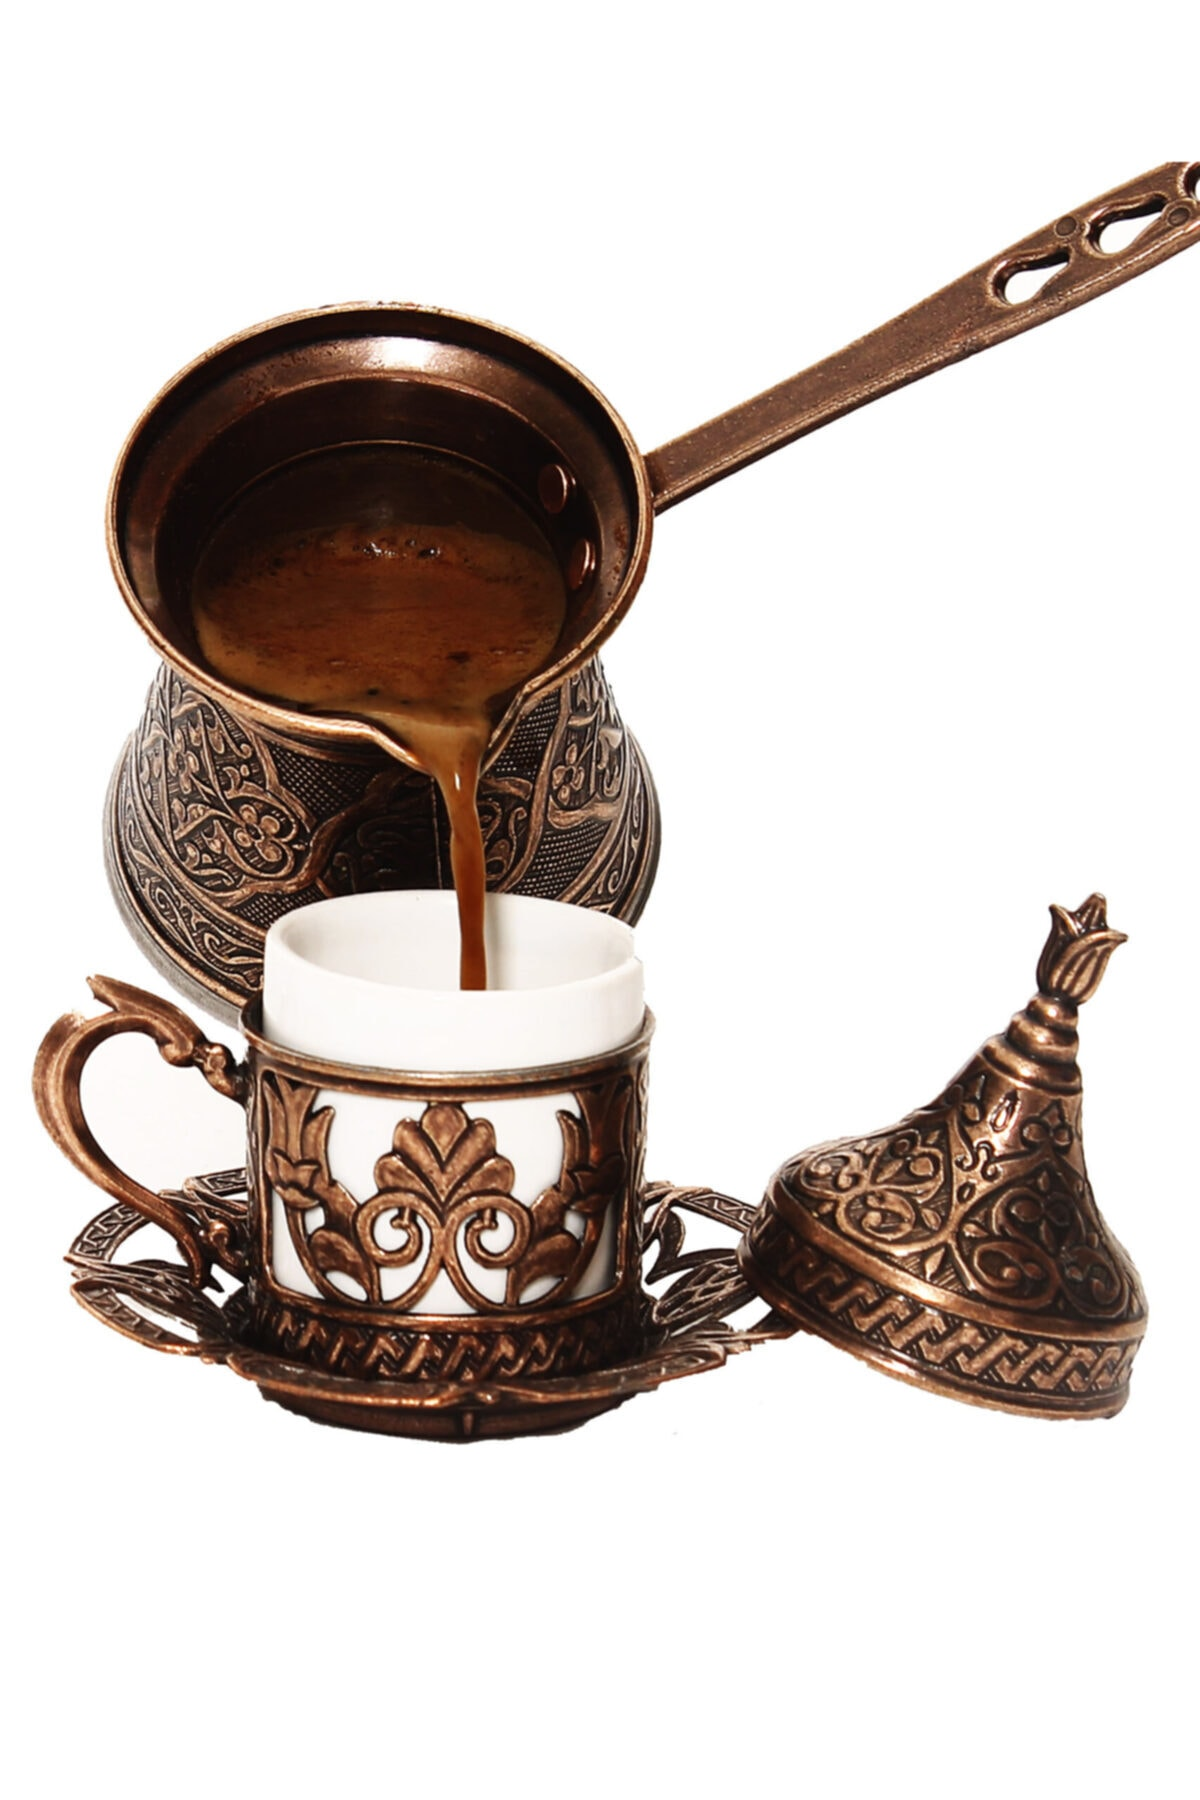 Patterned Copper Casting Coffee Pot 4 Personality-Magnet Bushes Compatible Turkish Ottoman Coffee Pattern Coffee Pot недорого